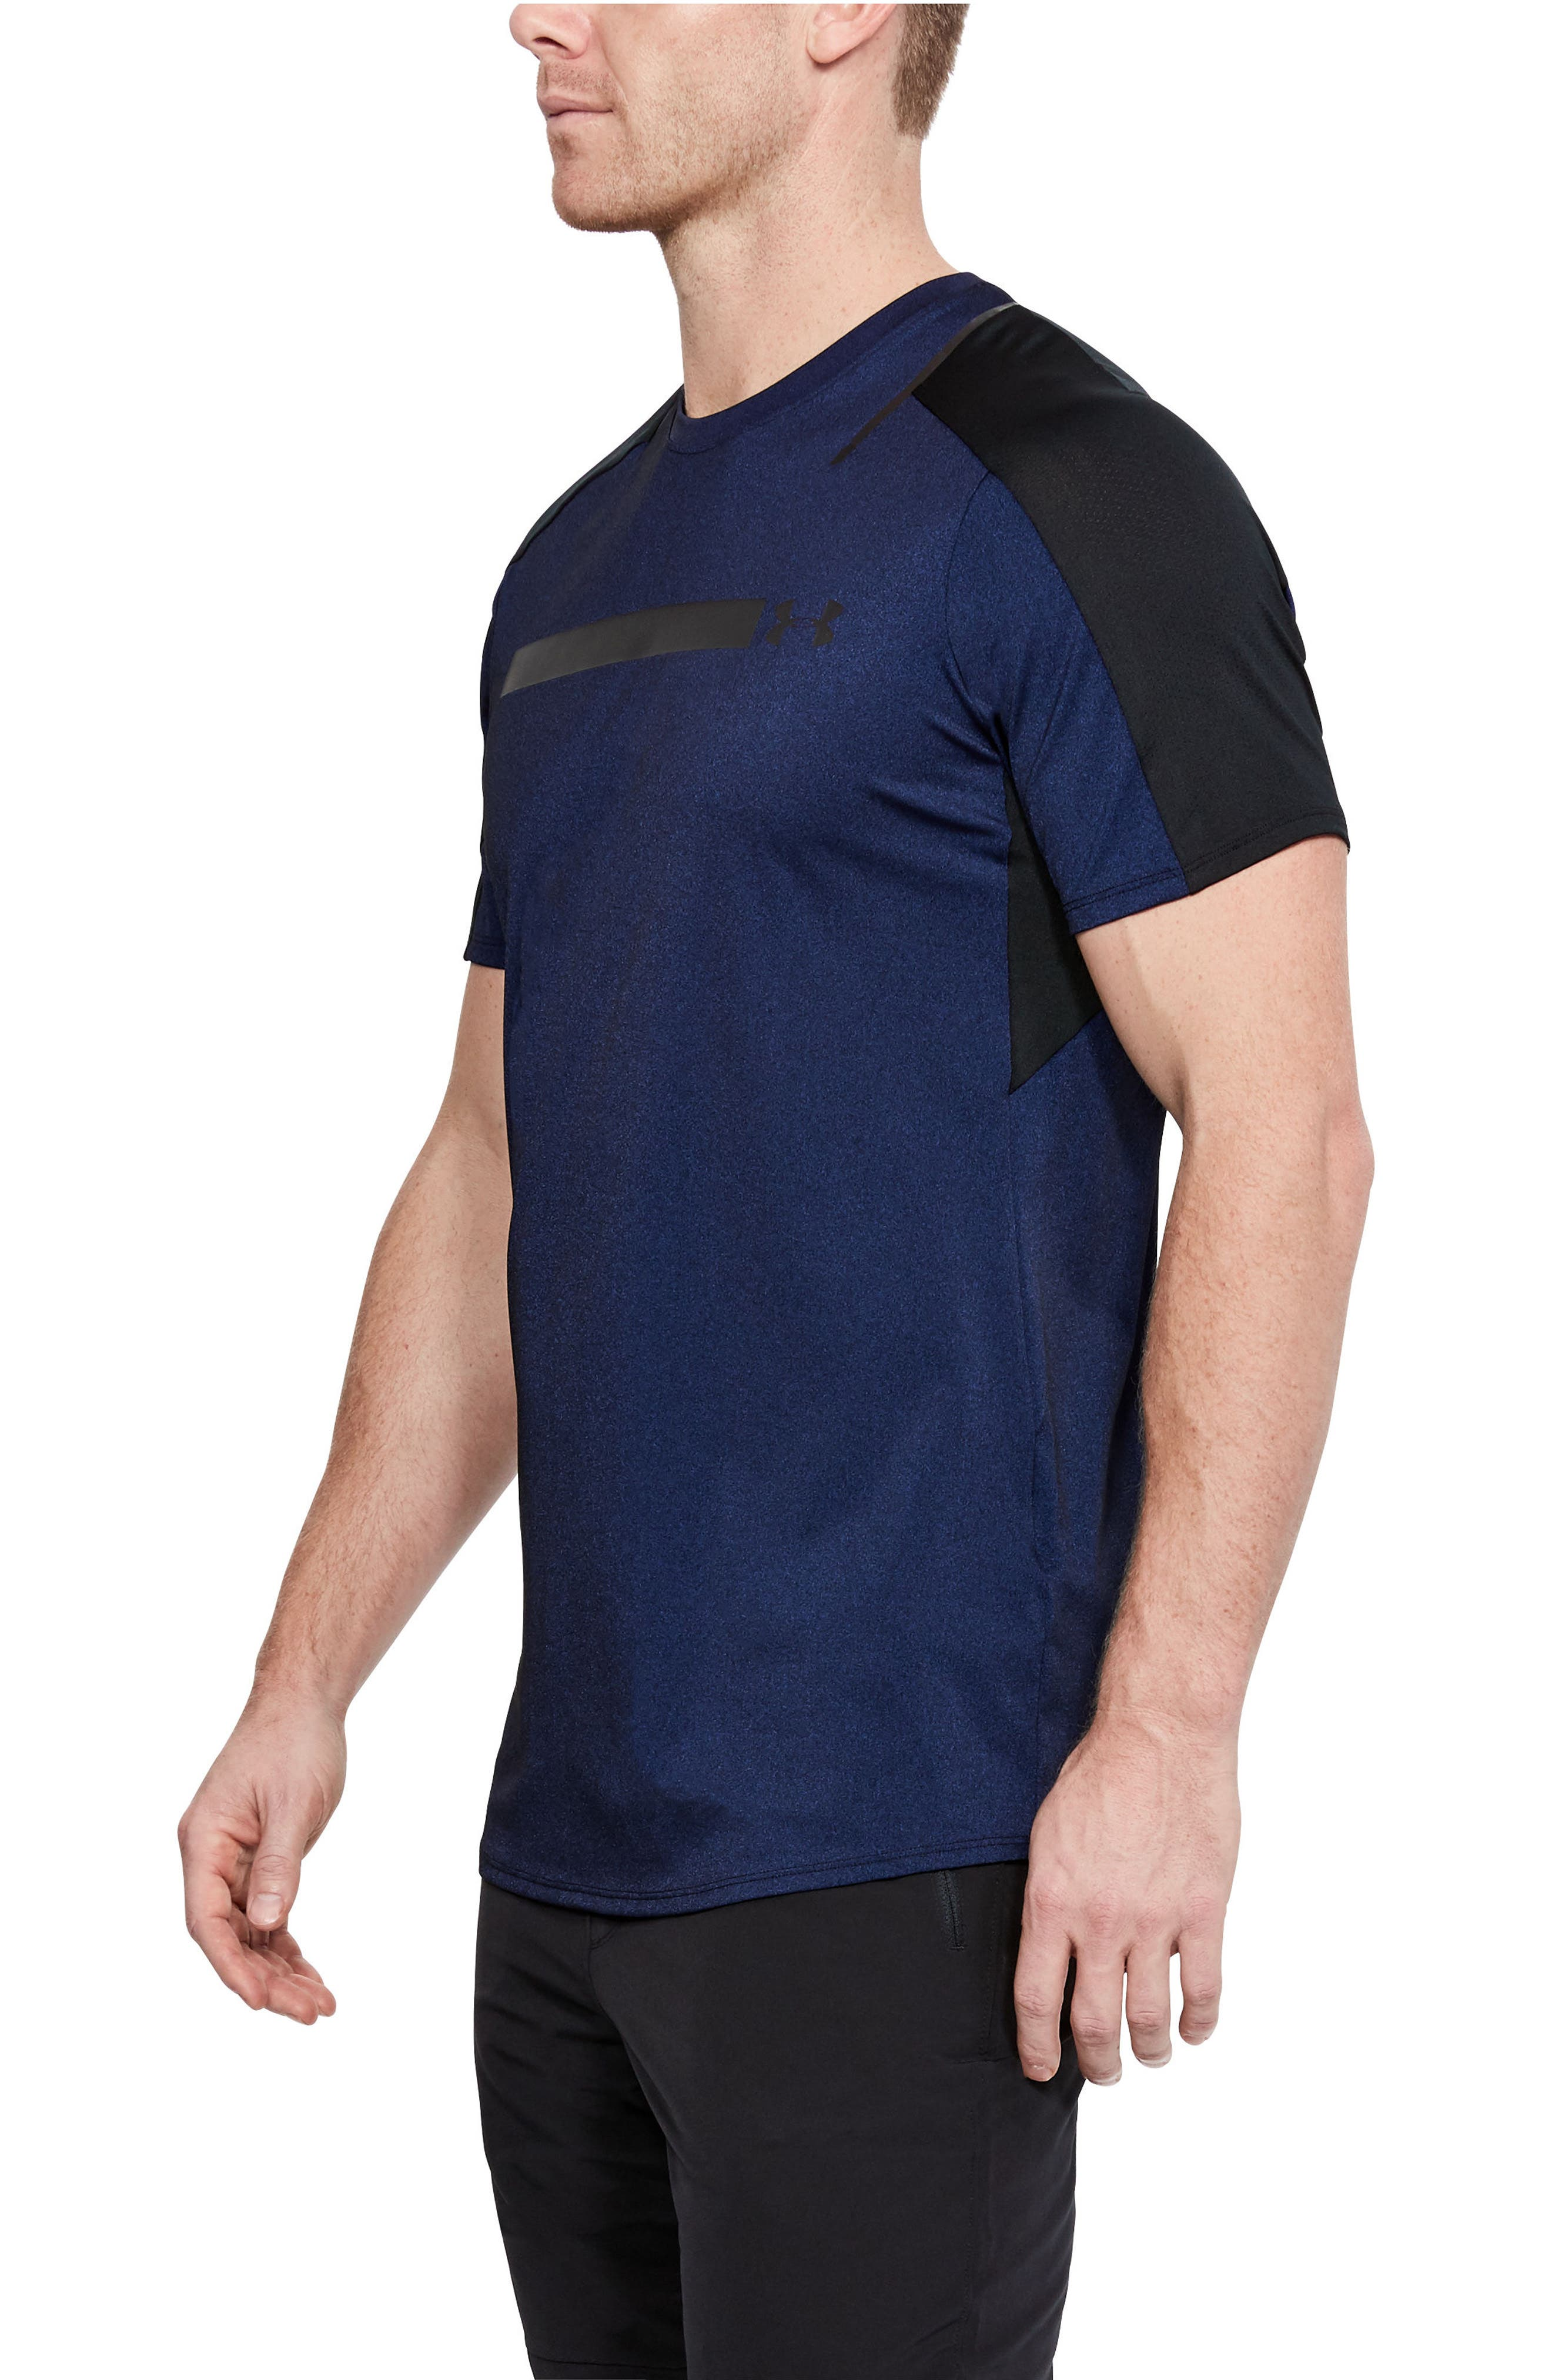 Perpetual Fitted Shirt,                             Alternate thumbnail 3, color,                             FORMATION BLUE/ BLACK